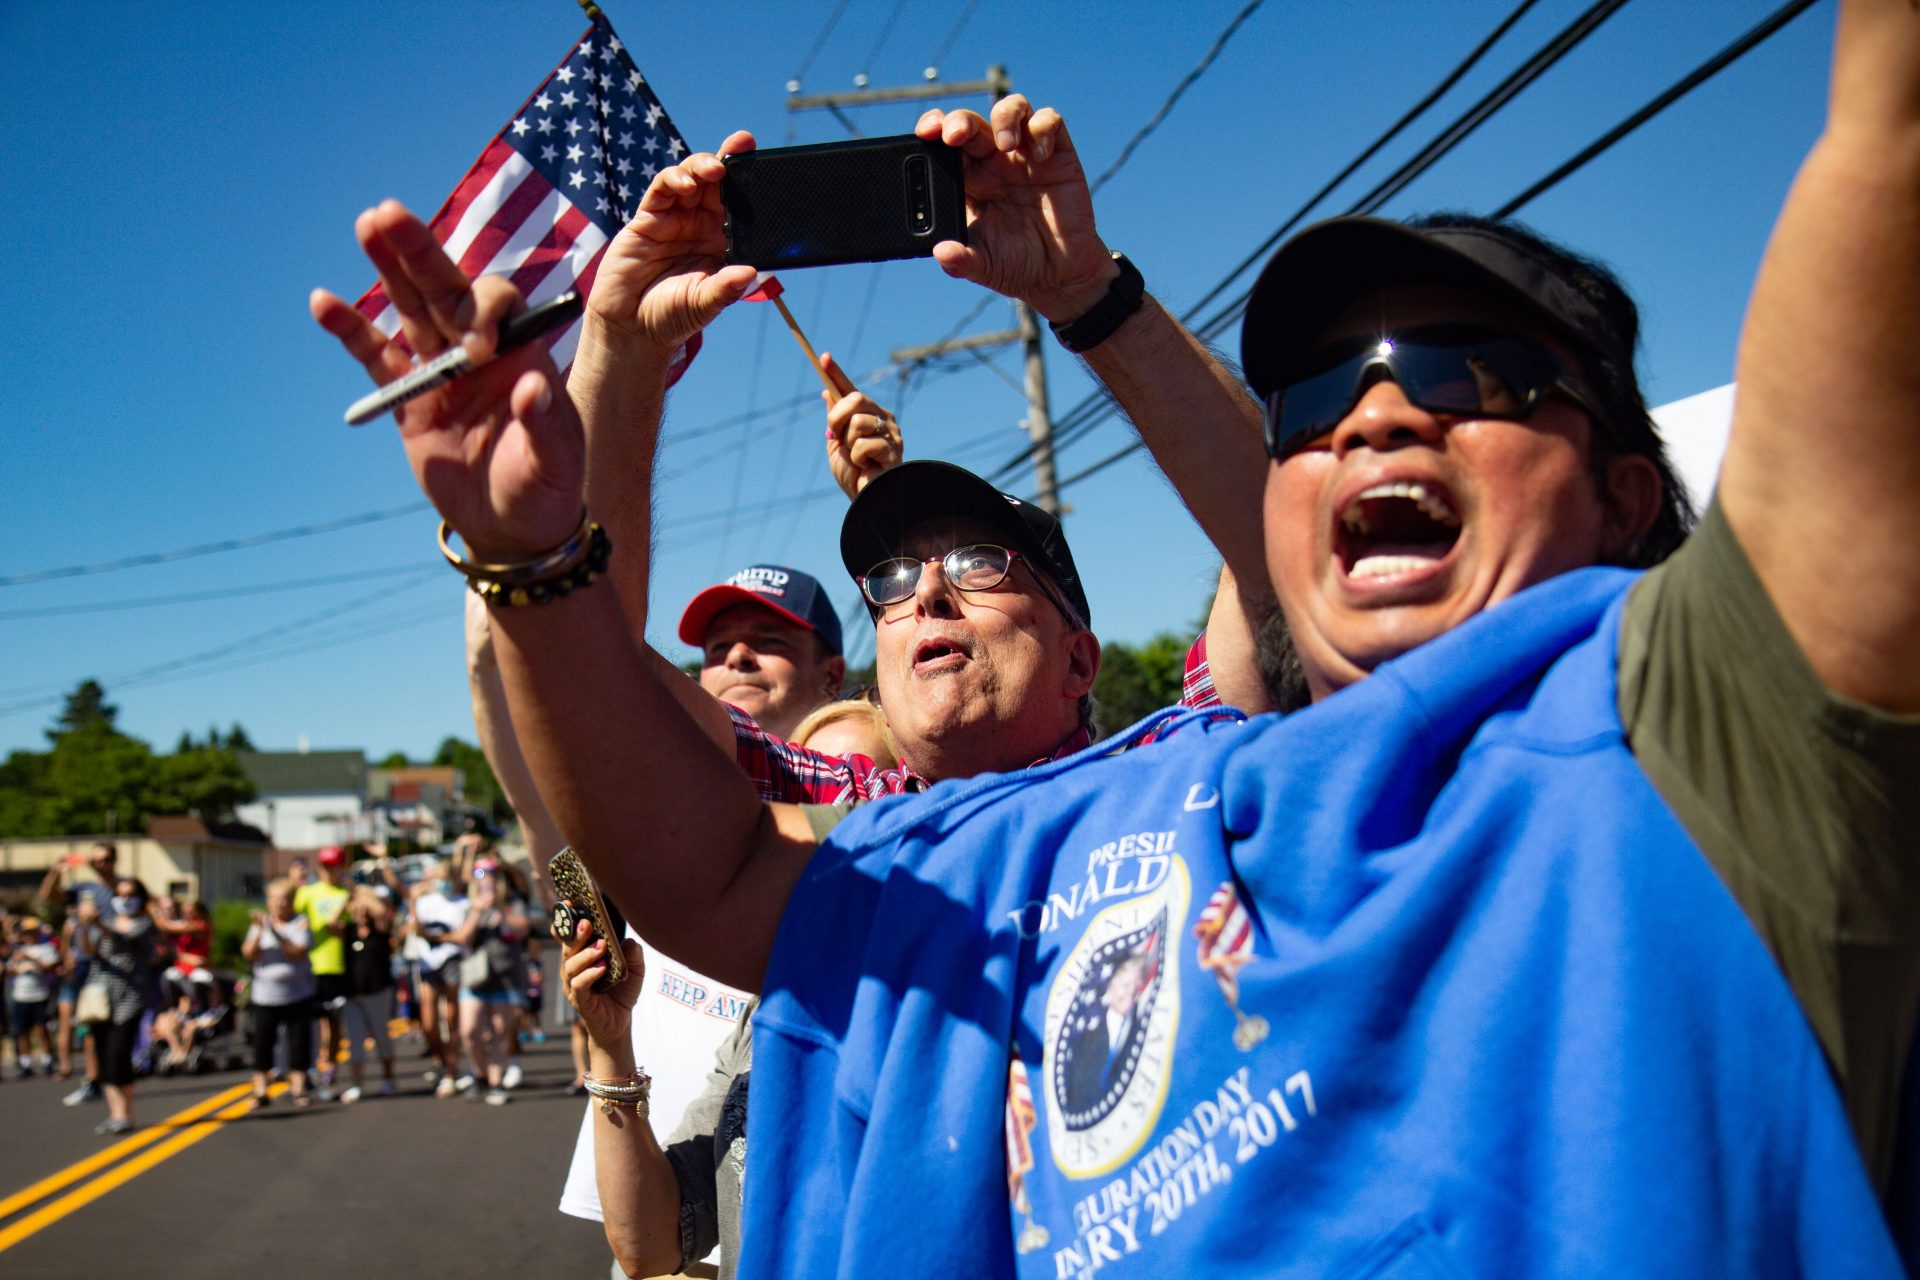 Trump fans excitedly greeted his motorcade as he campaigned in Old Forge, Pa., Thursday.